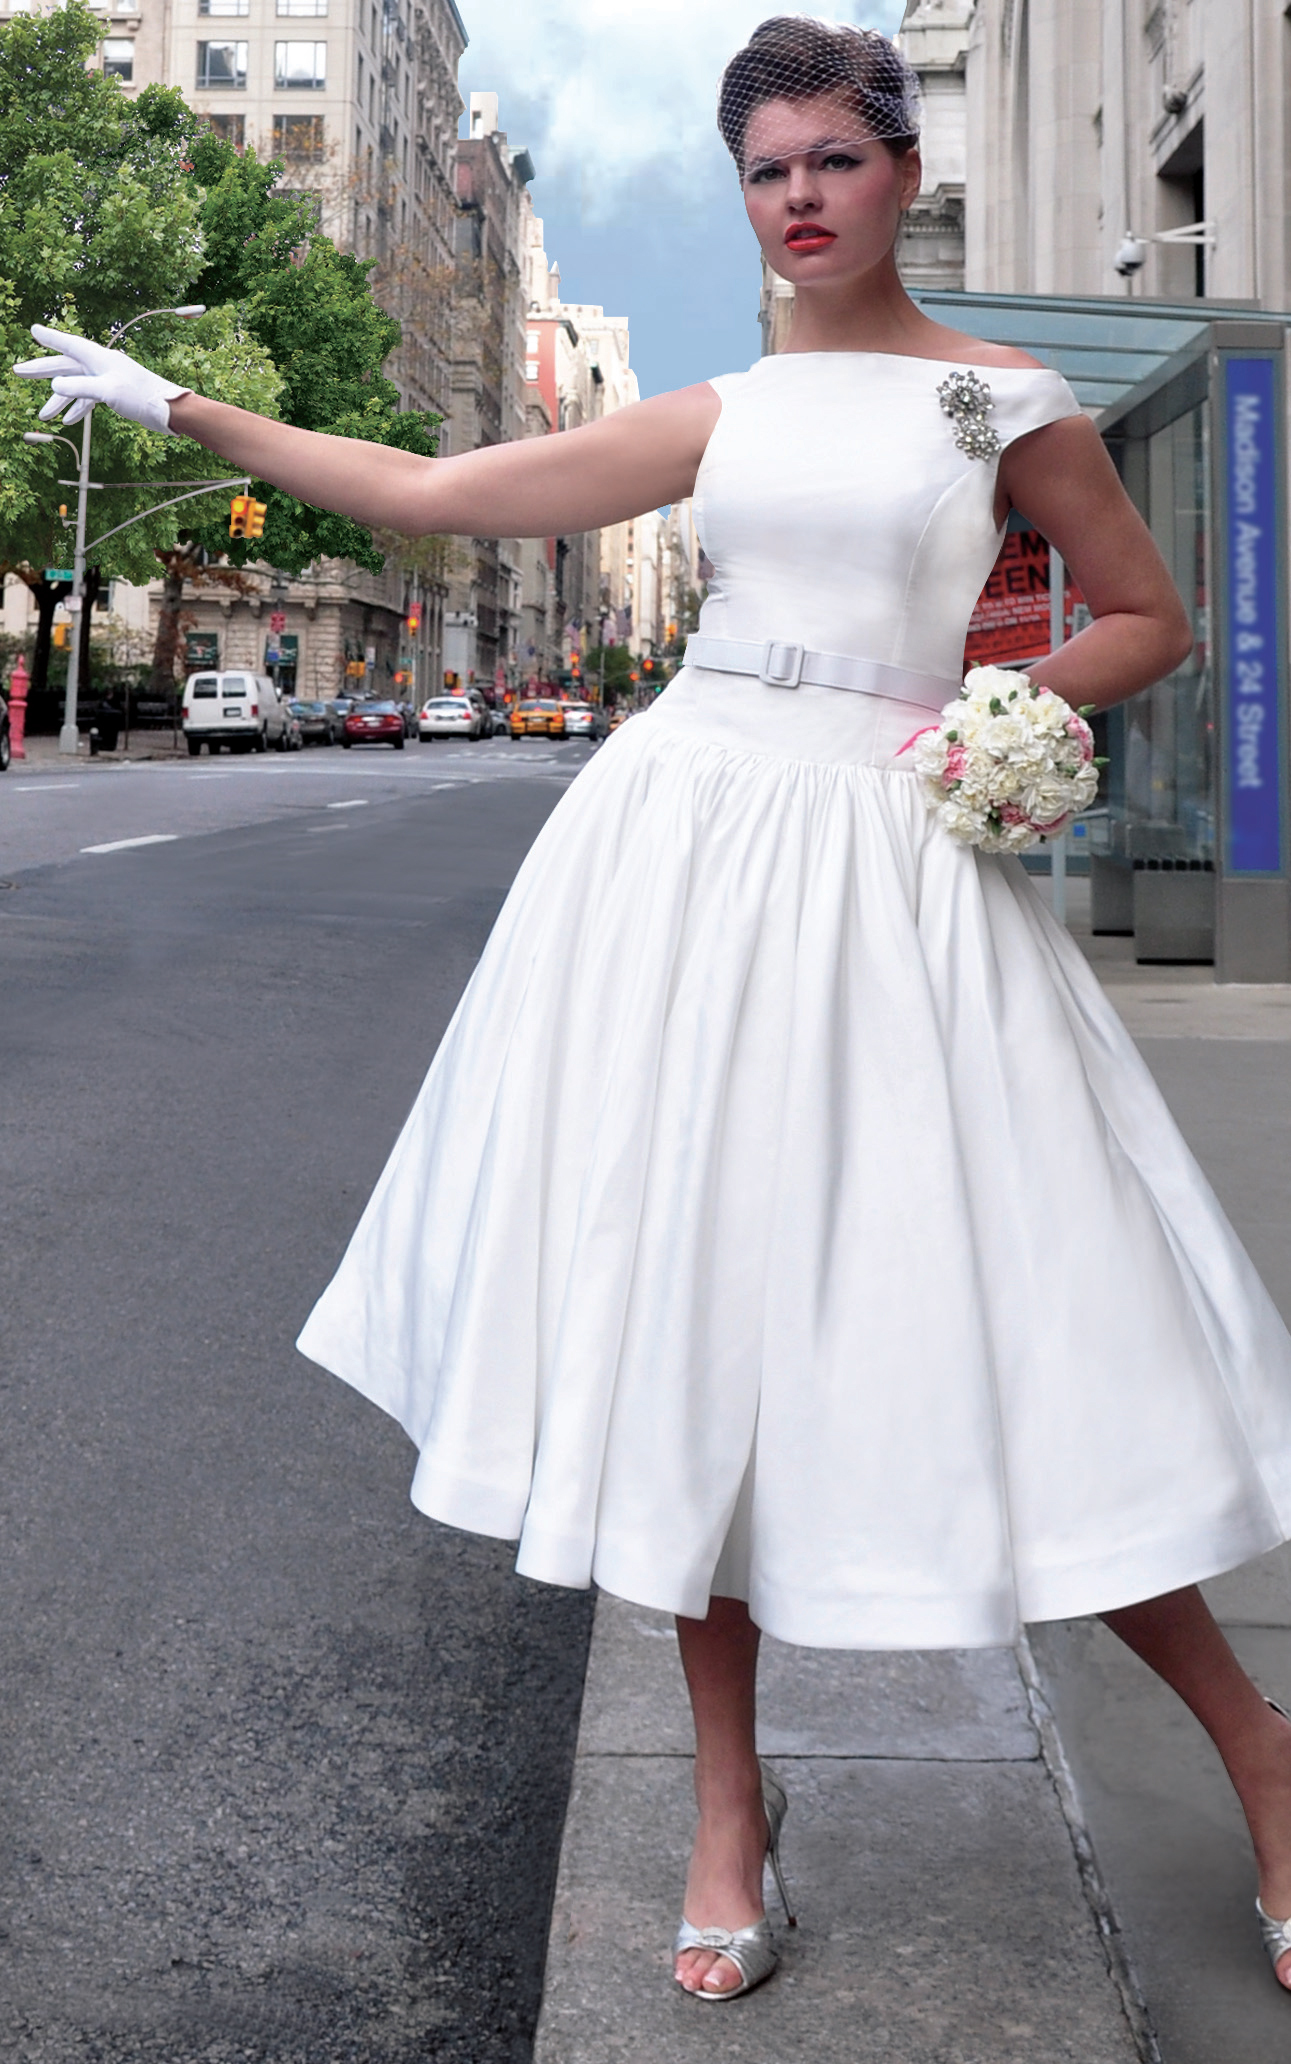 ... 23 2014 at 5 52 pm fancy ny 50 s vintage wedding dress 50 s style